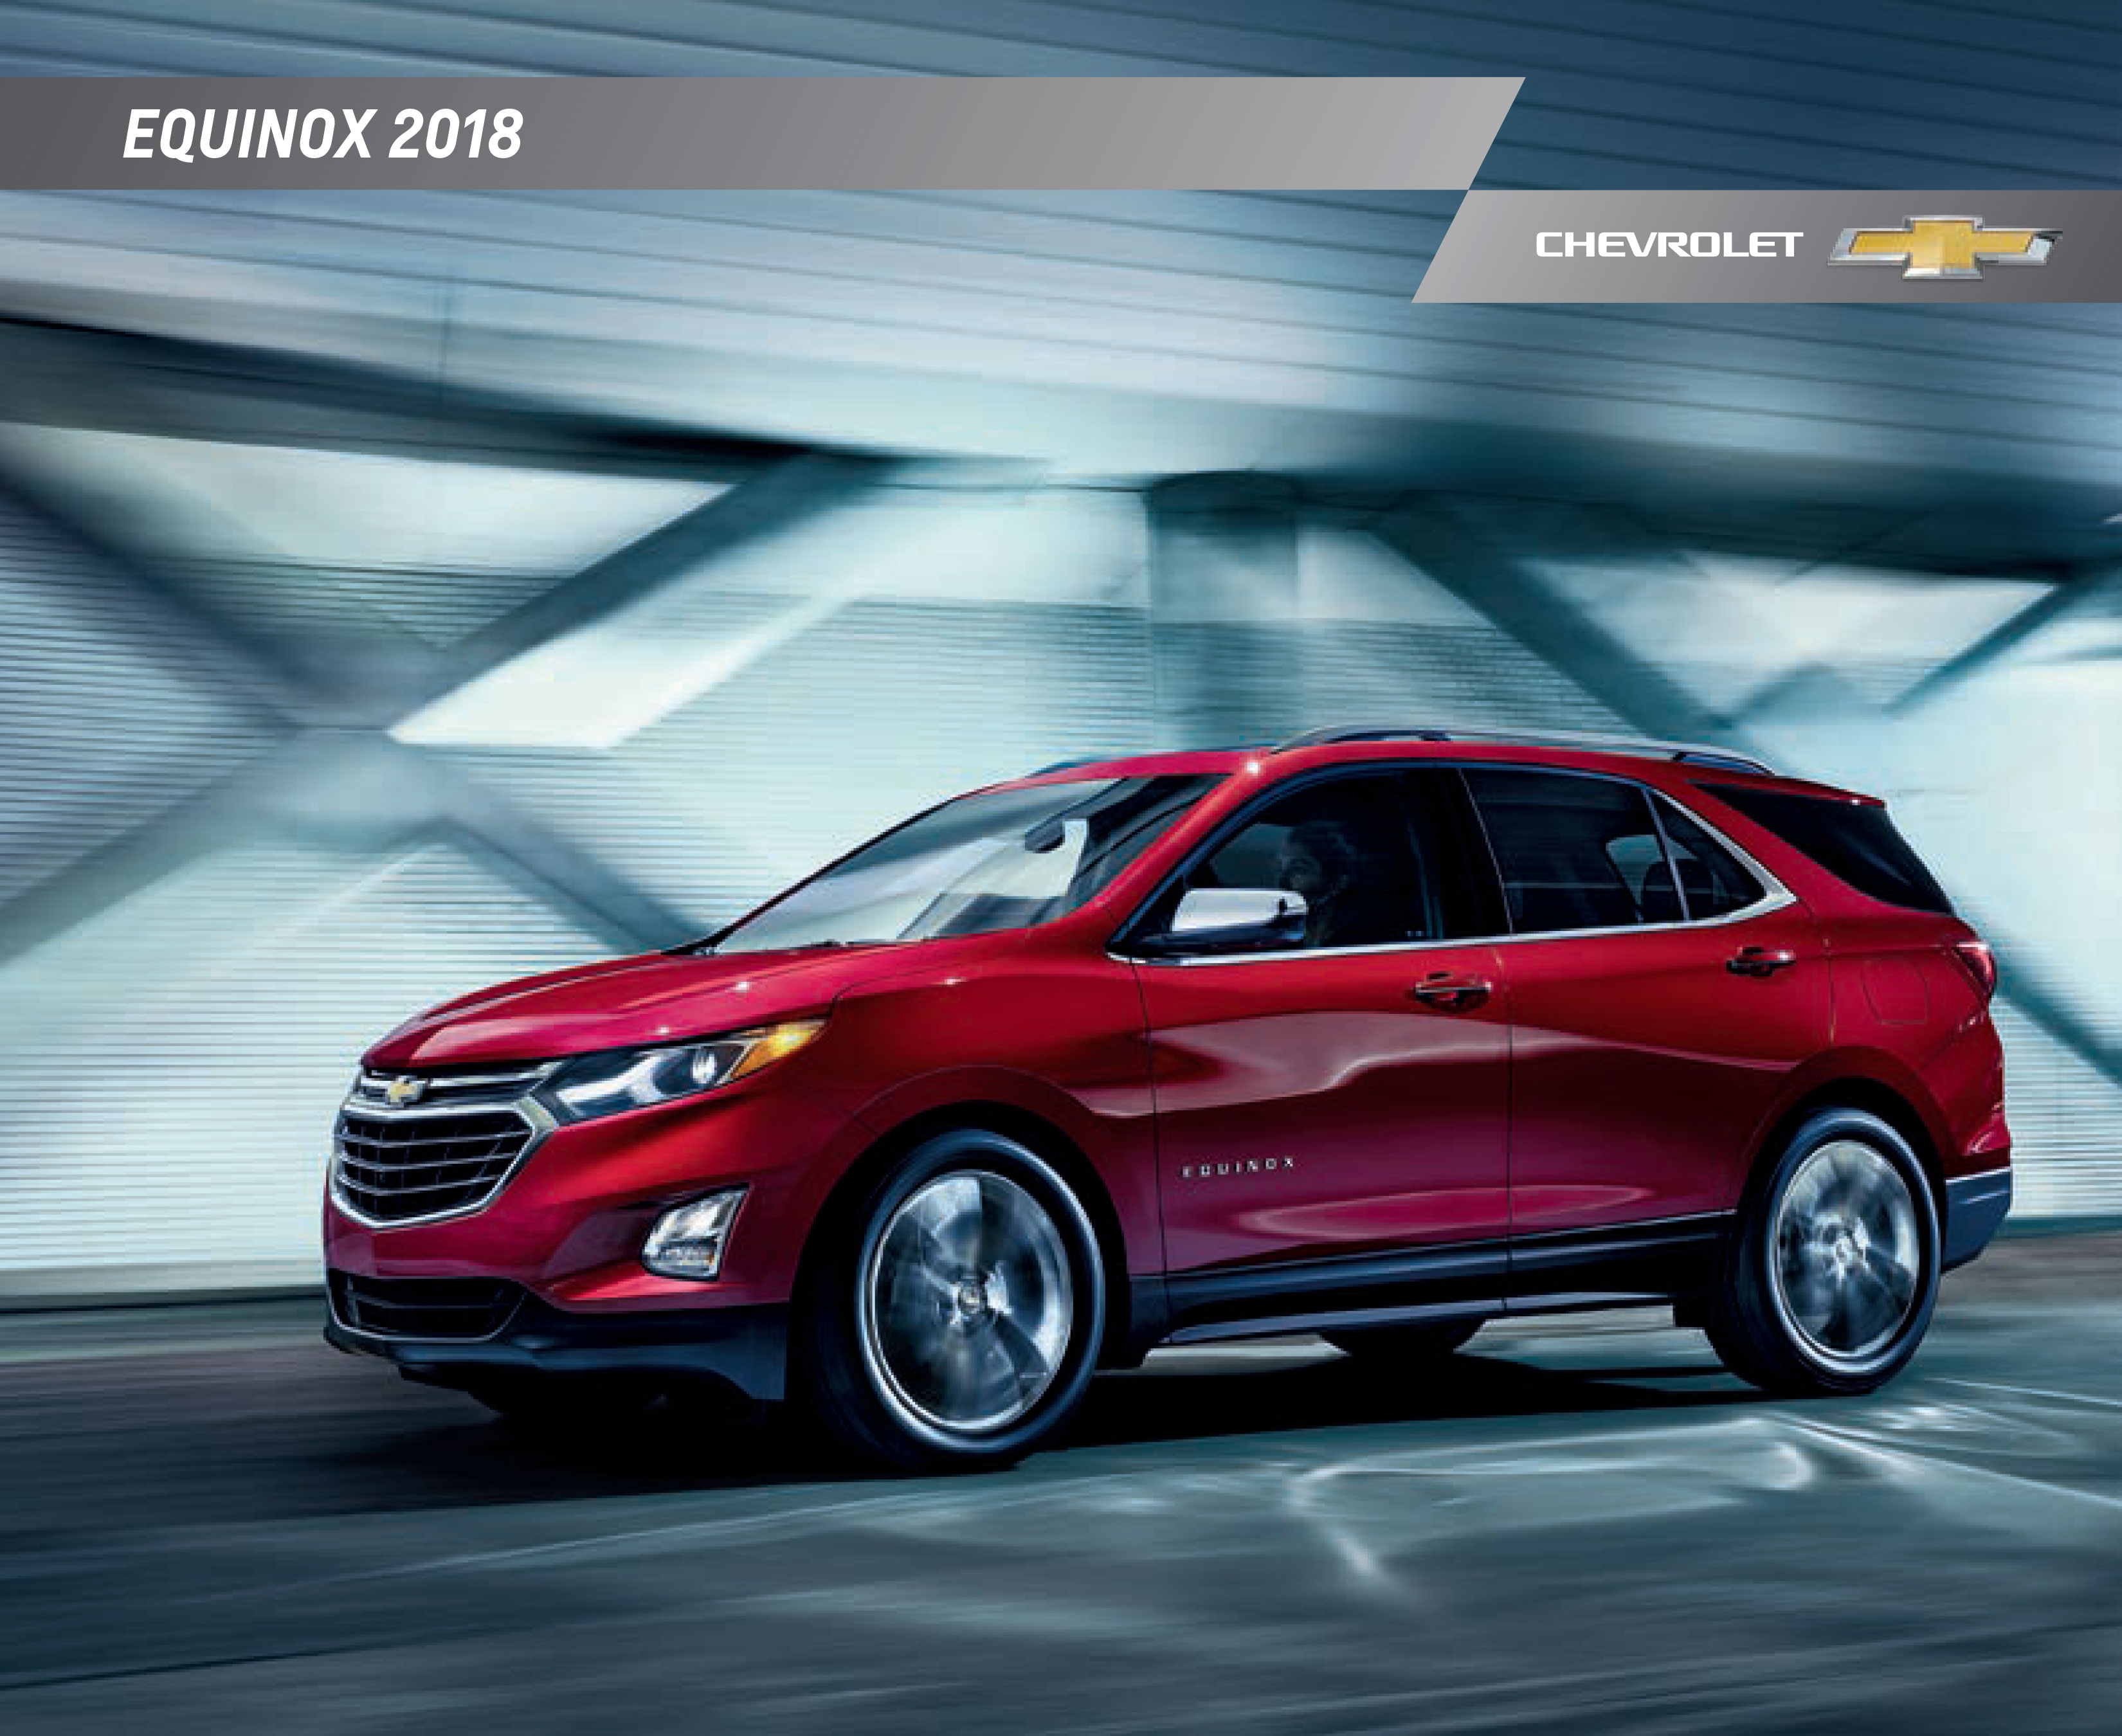 Chevrolet Equinox Brochure Graff Bay City - Bay city car show 2018